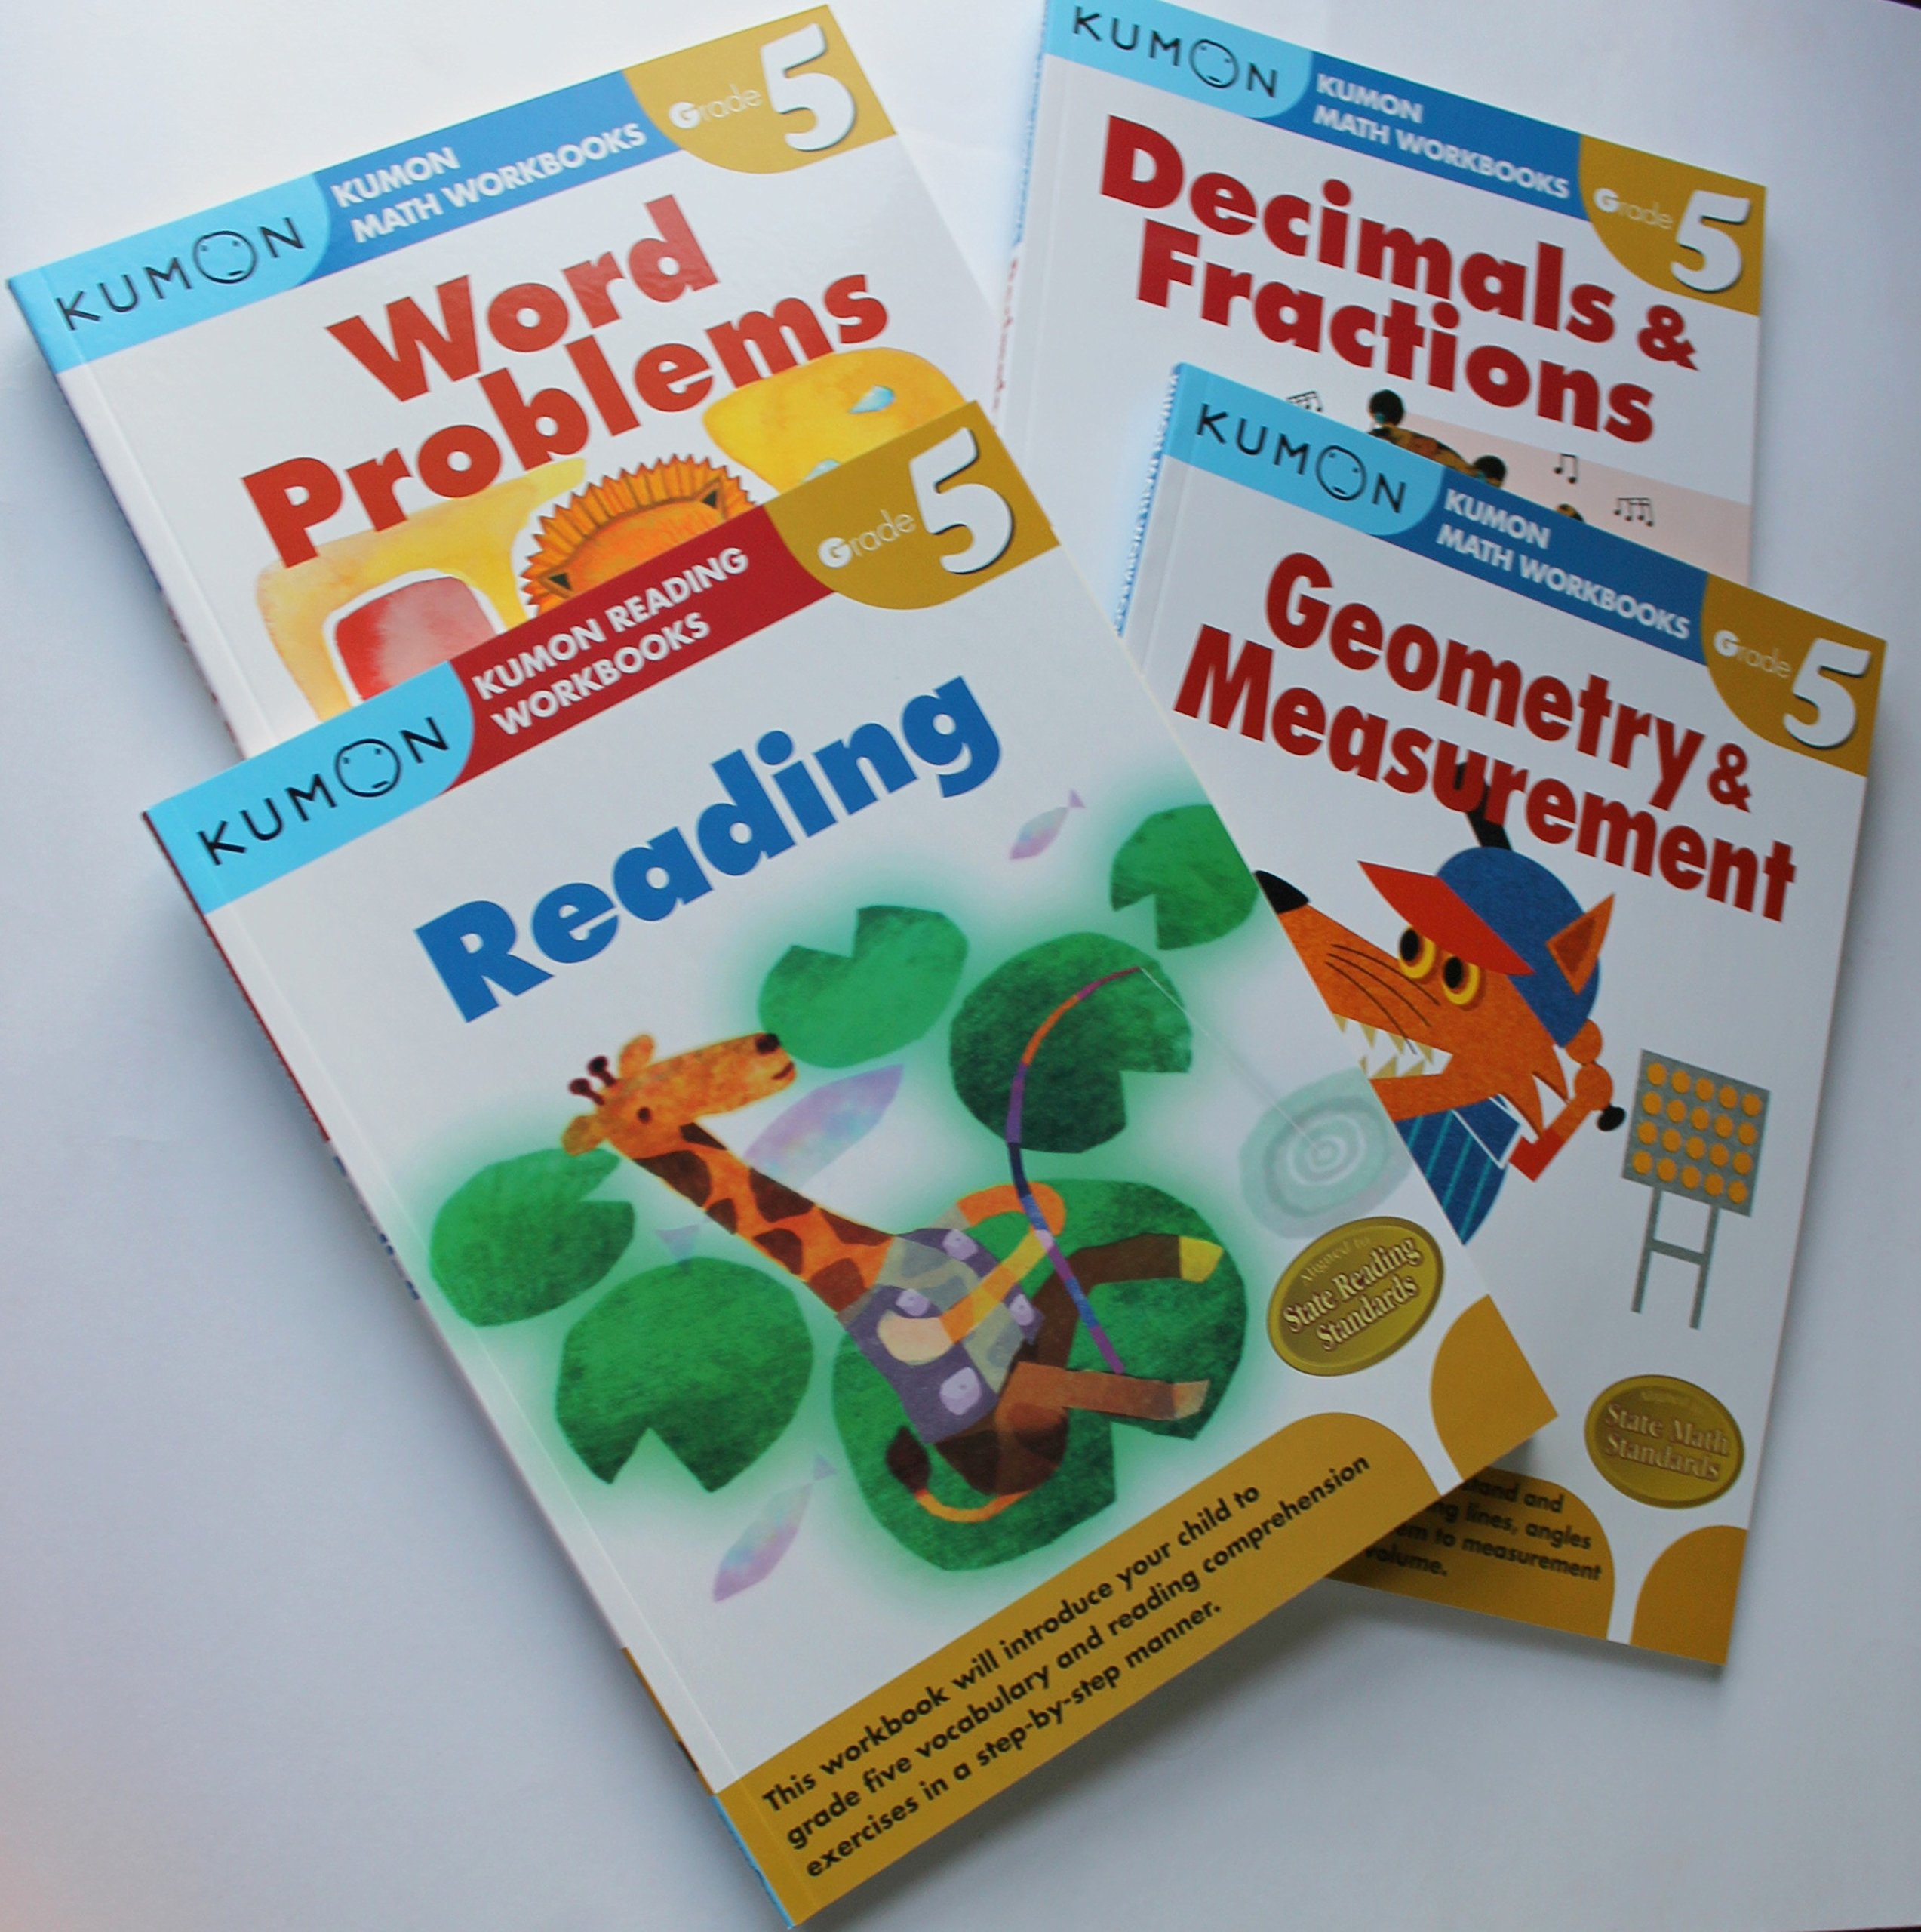 Kumon Grade 5 Math + Verbal workbooks (4 books) - Reading, Decimals ...